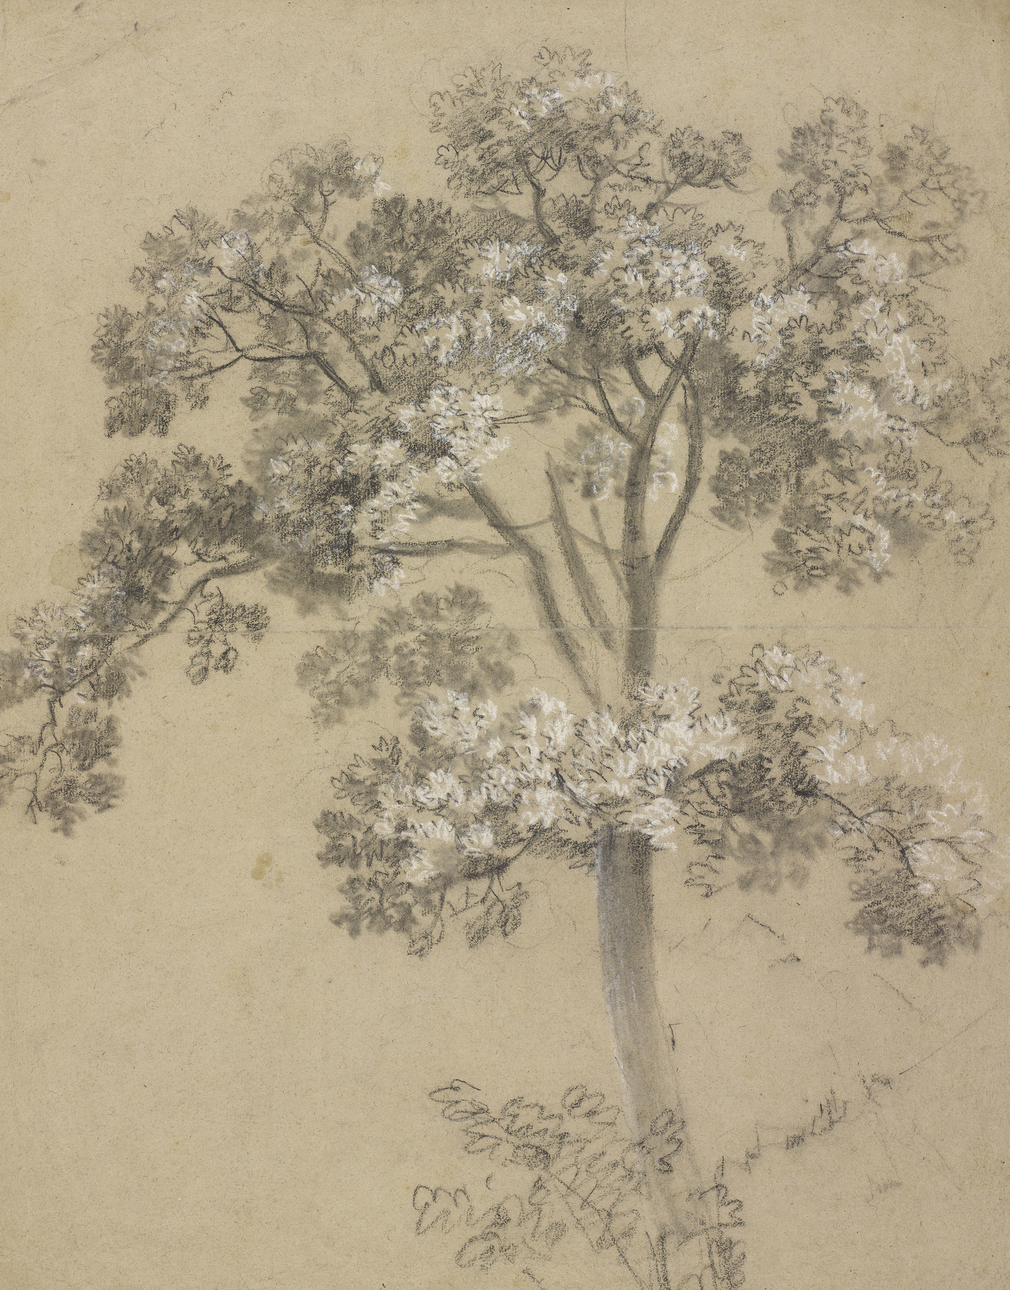 Thomas Gainsborough, Study of a tree, possibly a sycamore, c.1746-48